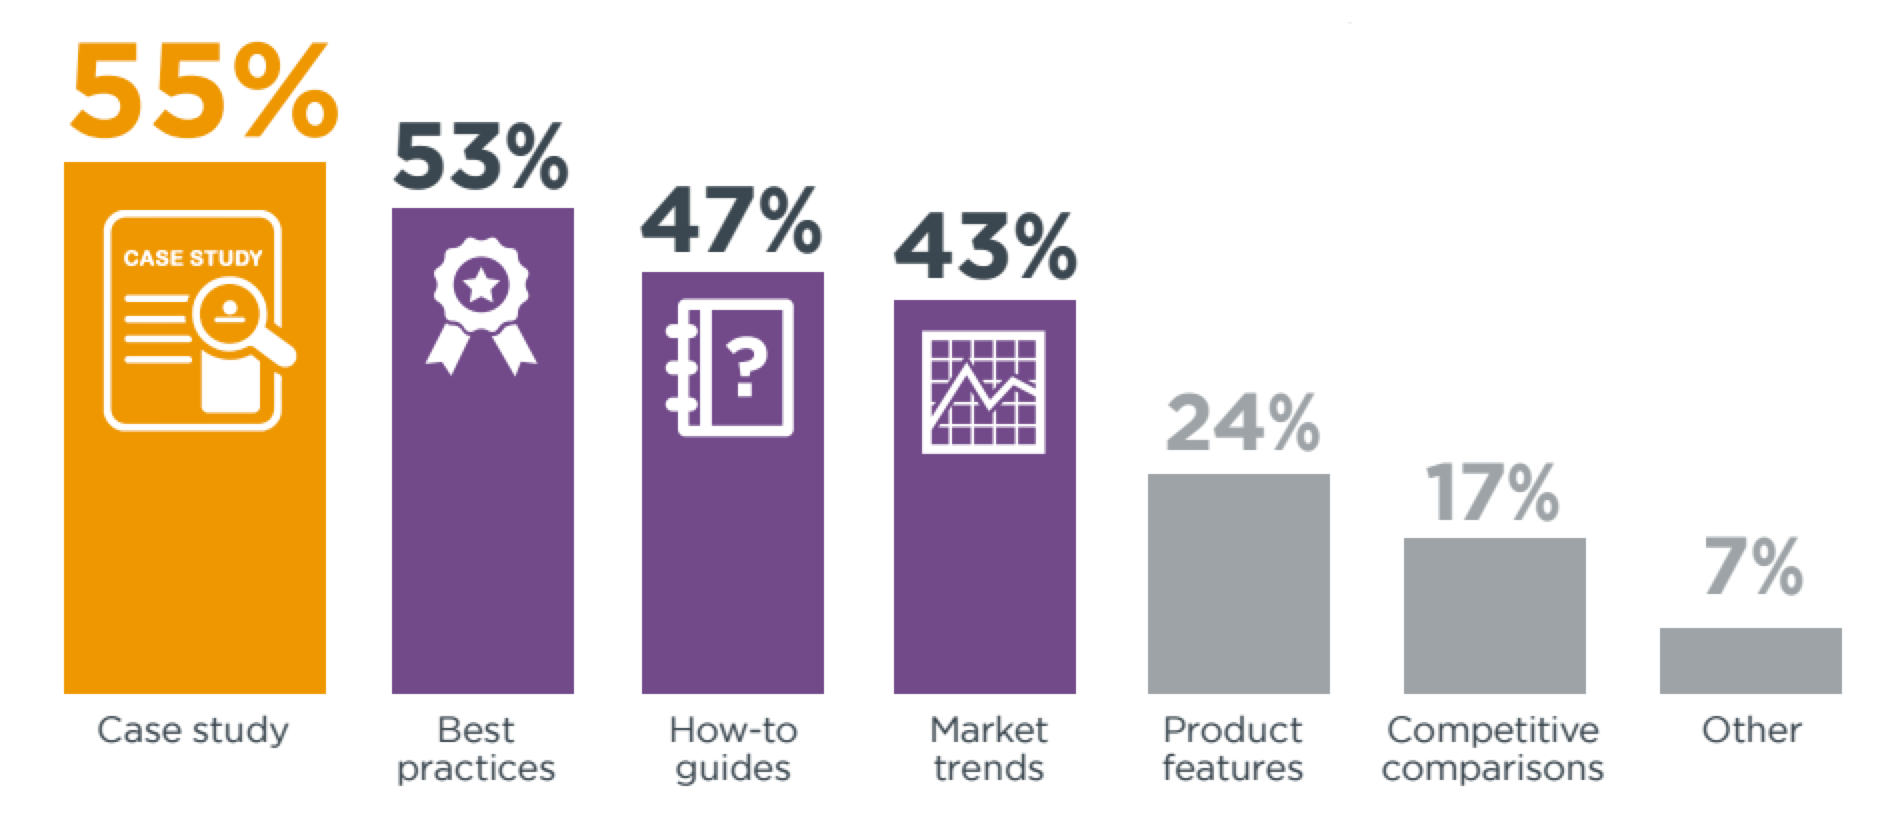 2016 B2B Content Marketing Report Effective Content Subjects